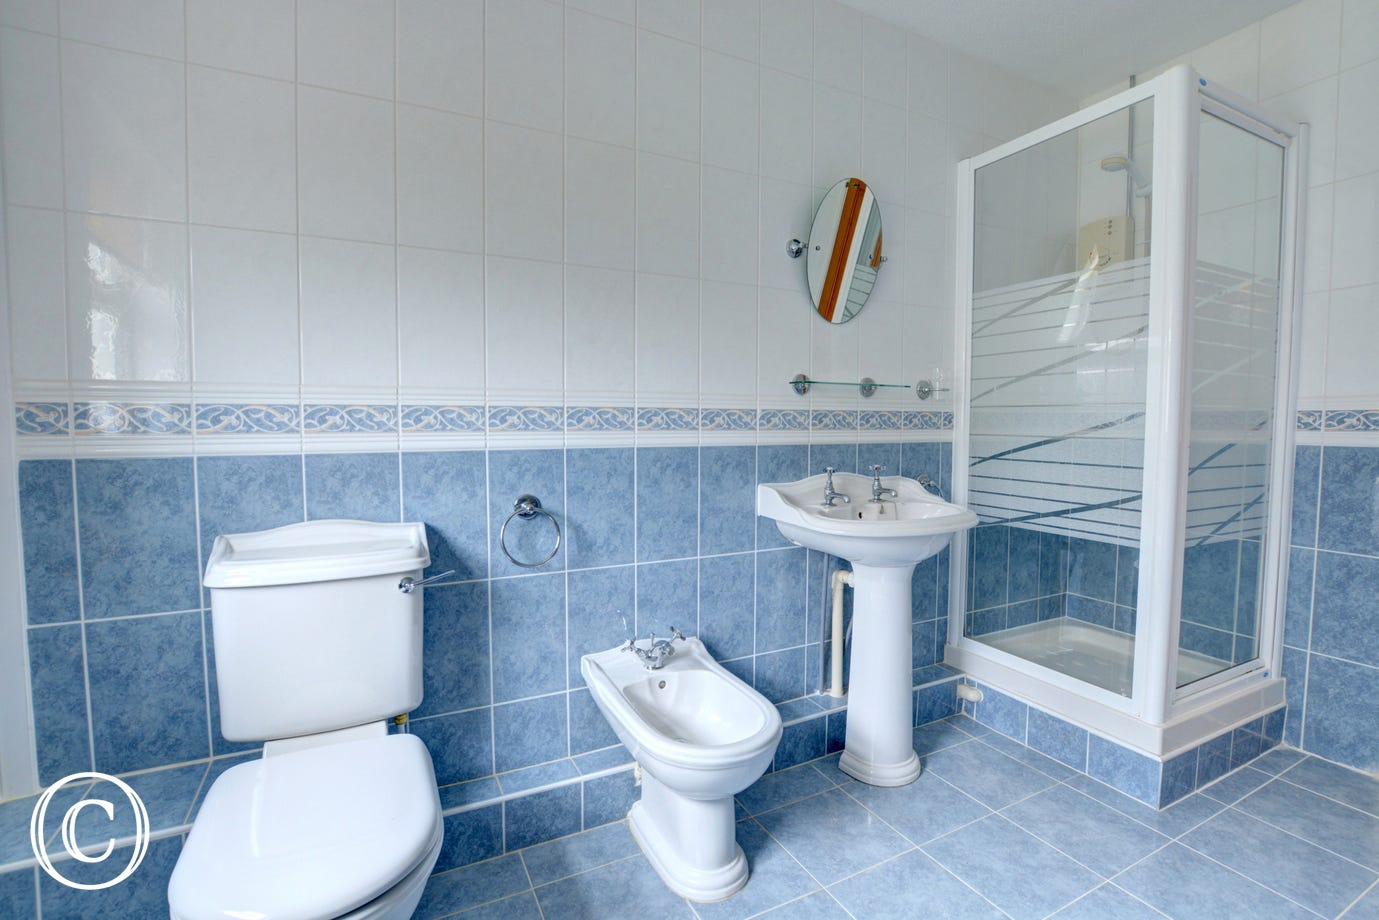 Alternate view of bathroom with shower cubicle, toilet, bidet and wash basin